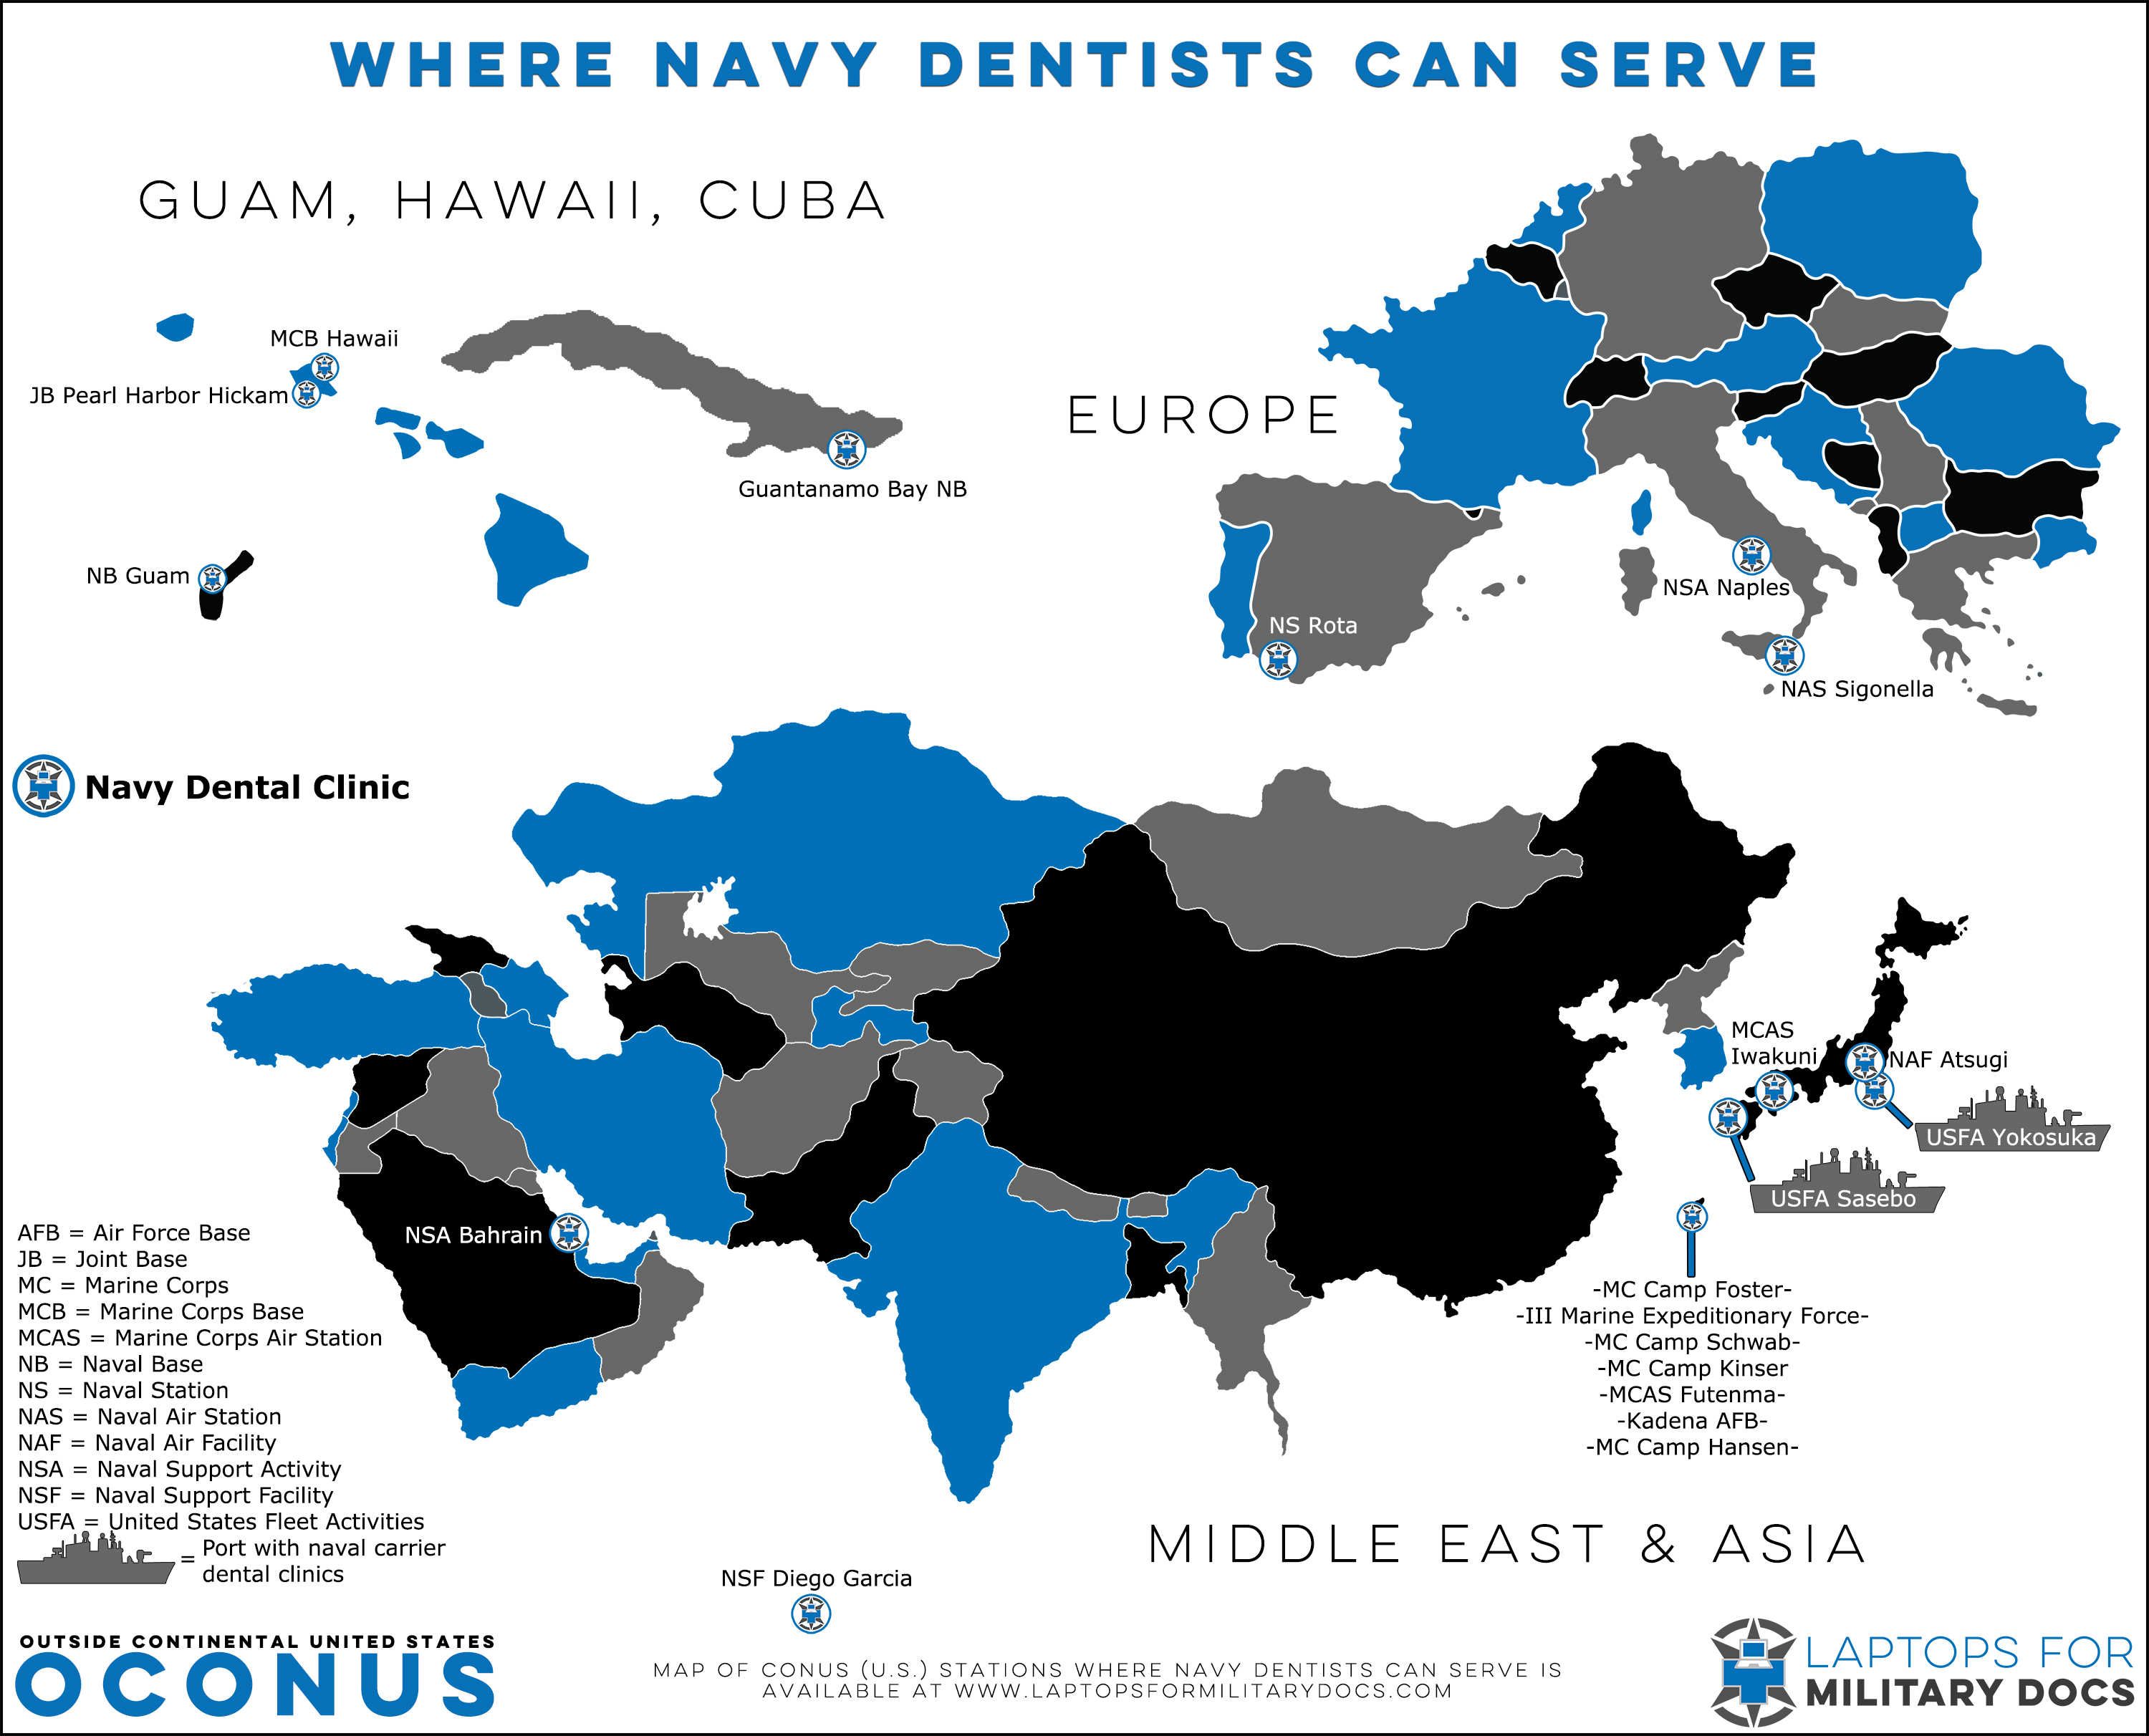 Map of Military Bases With Navy Dentists Outside the Continental United States